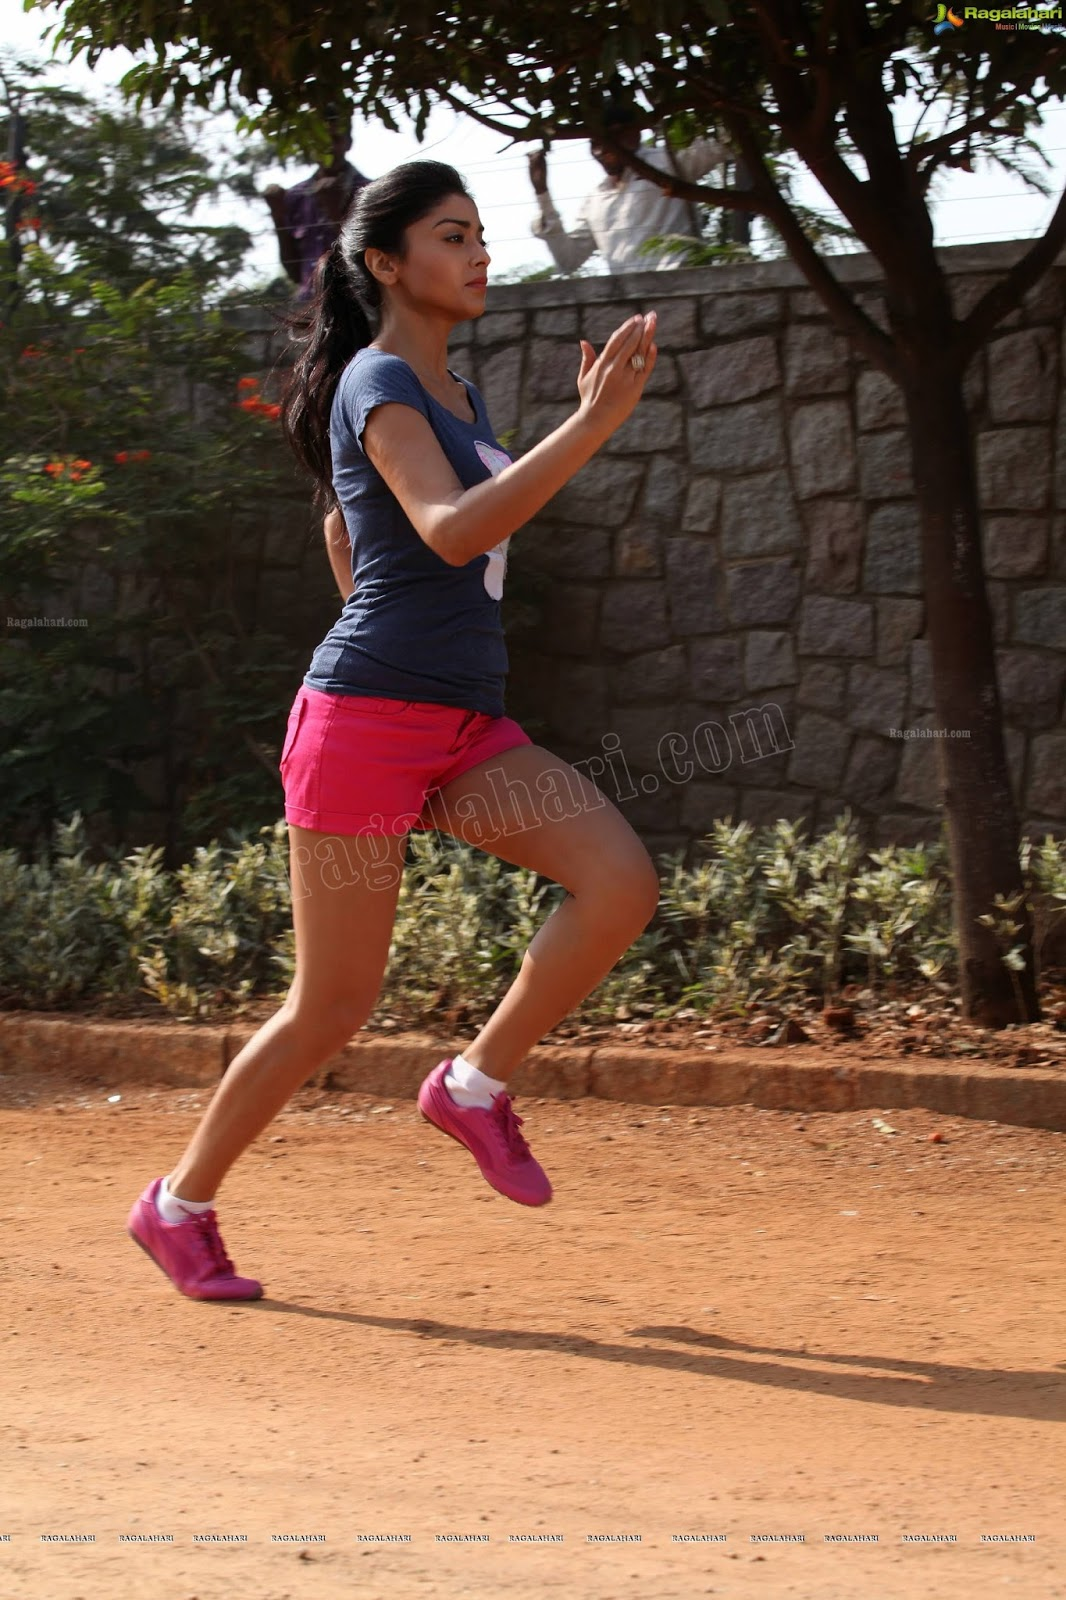 Shriya Saran Doing Yoga in Tight Track Suit And Sleeveless Top